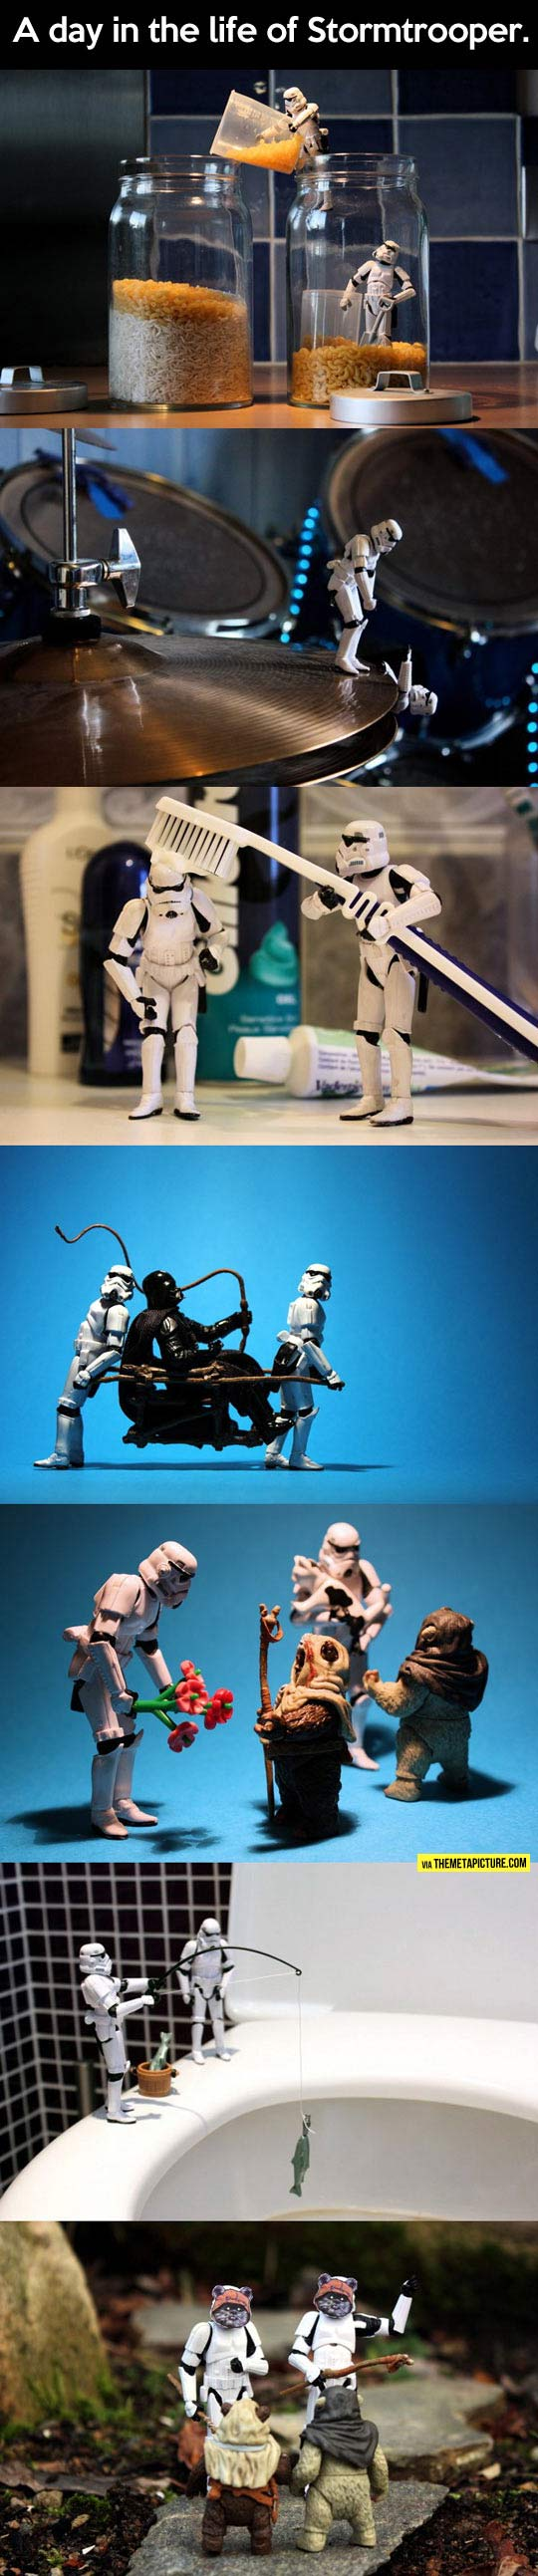 The life of Stormtrooper...